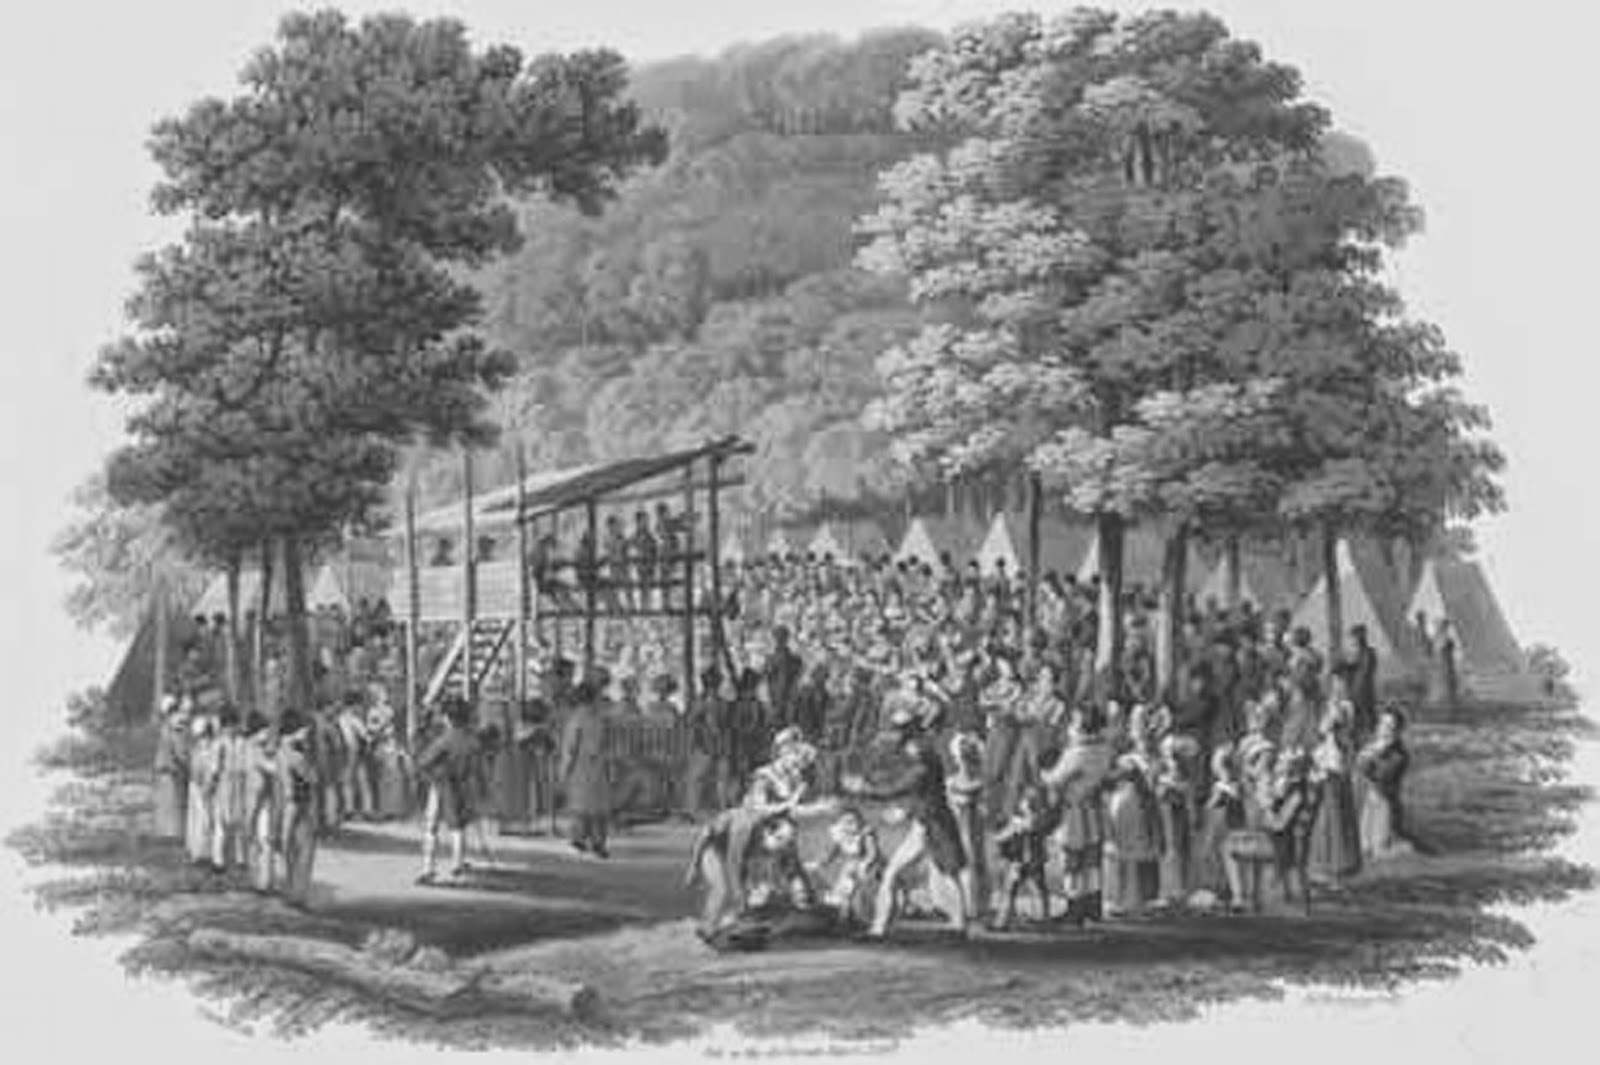 Methodist camp meeting 1819. The season of Encampment